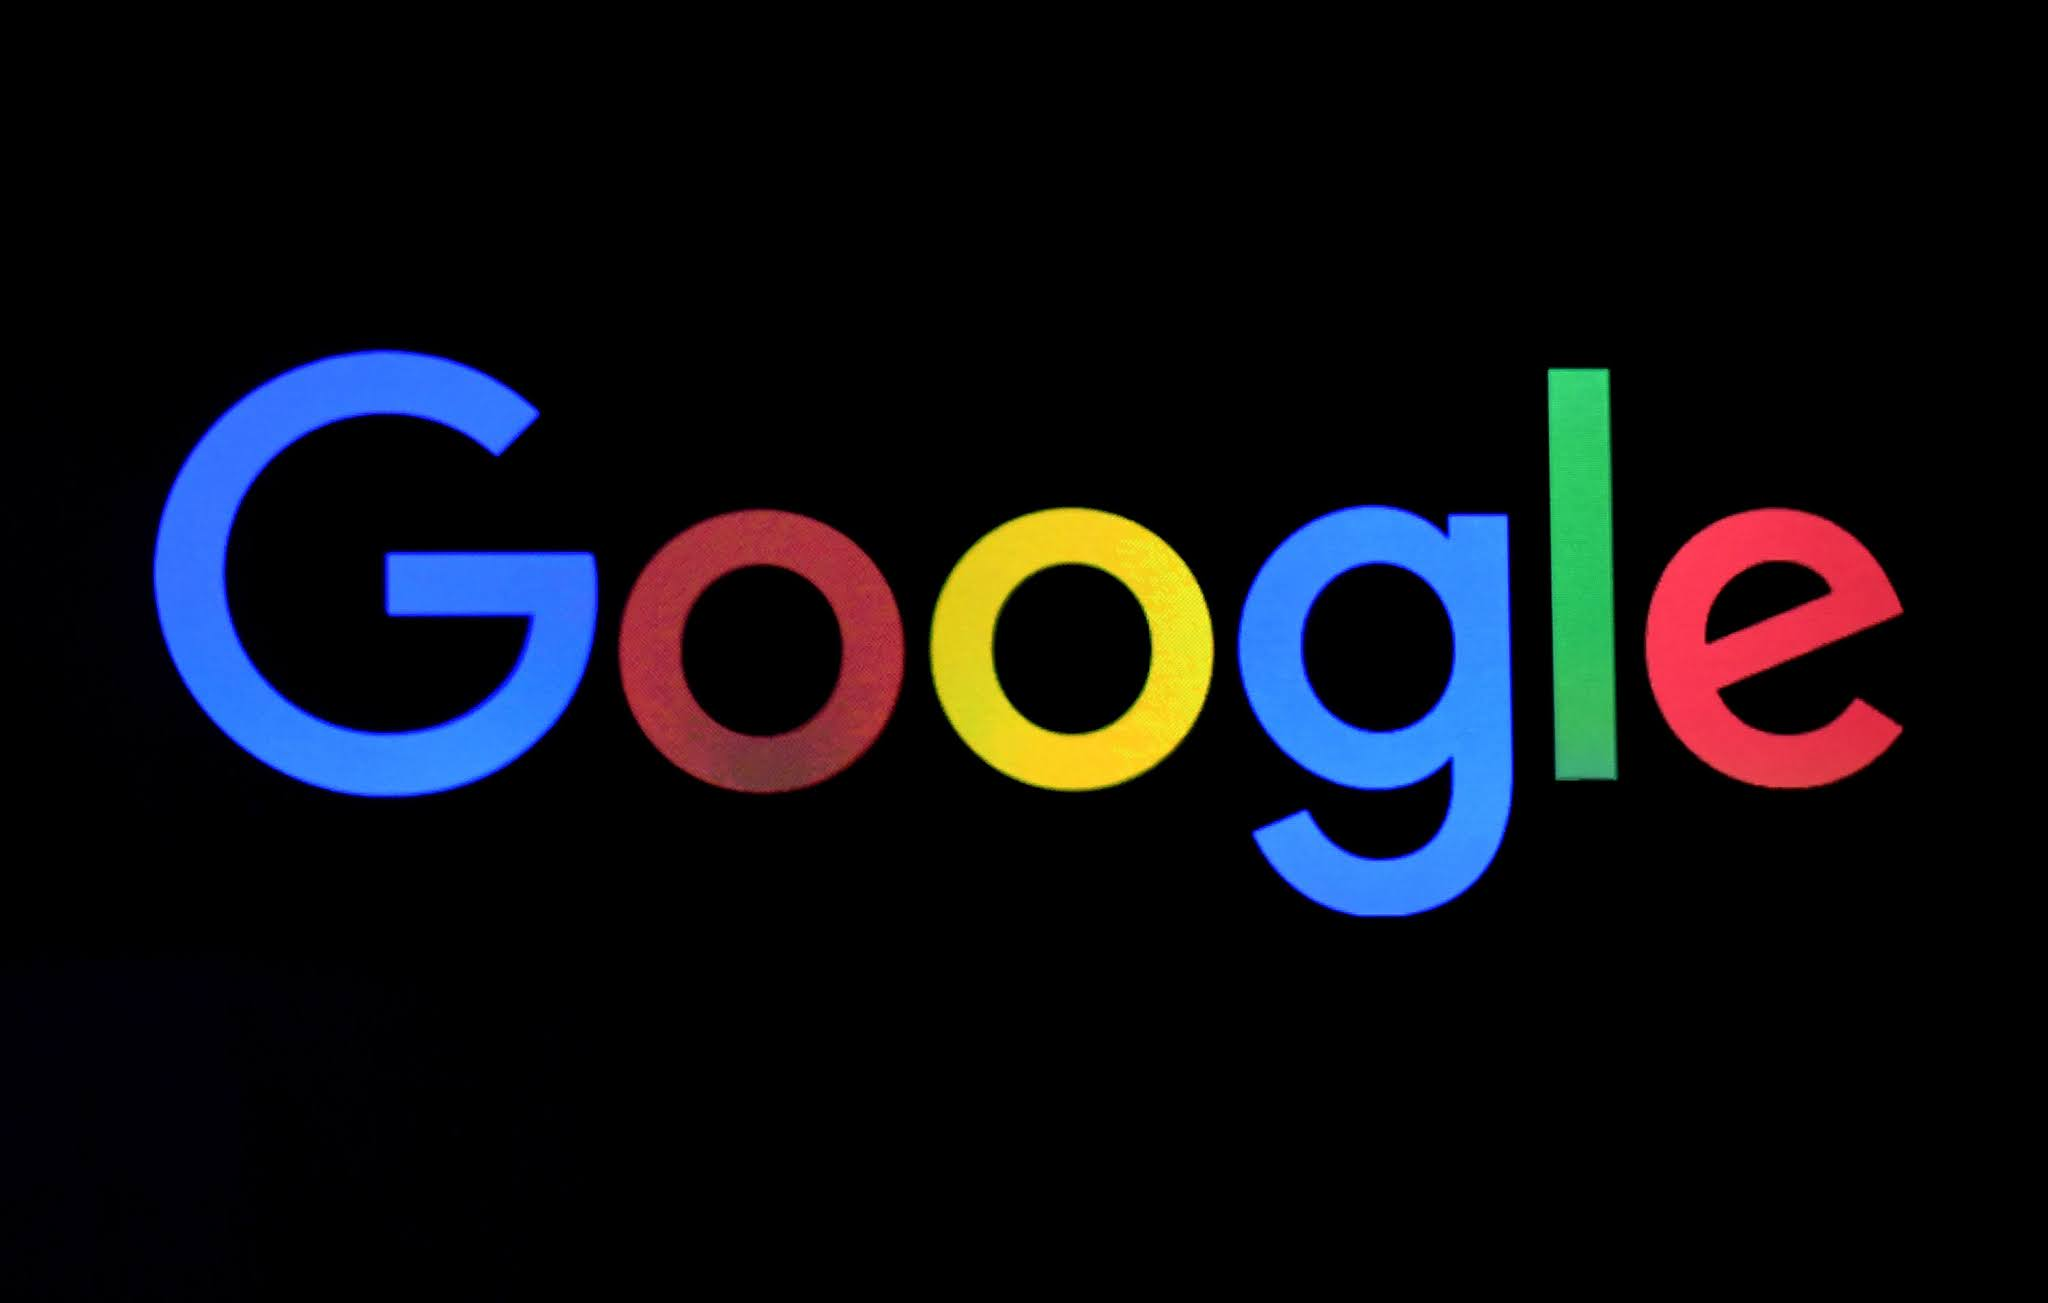 Google Scholar: How to Use Google's Academic Search Engine